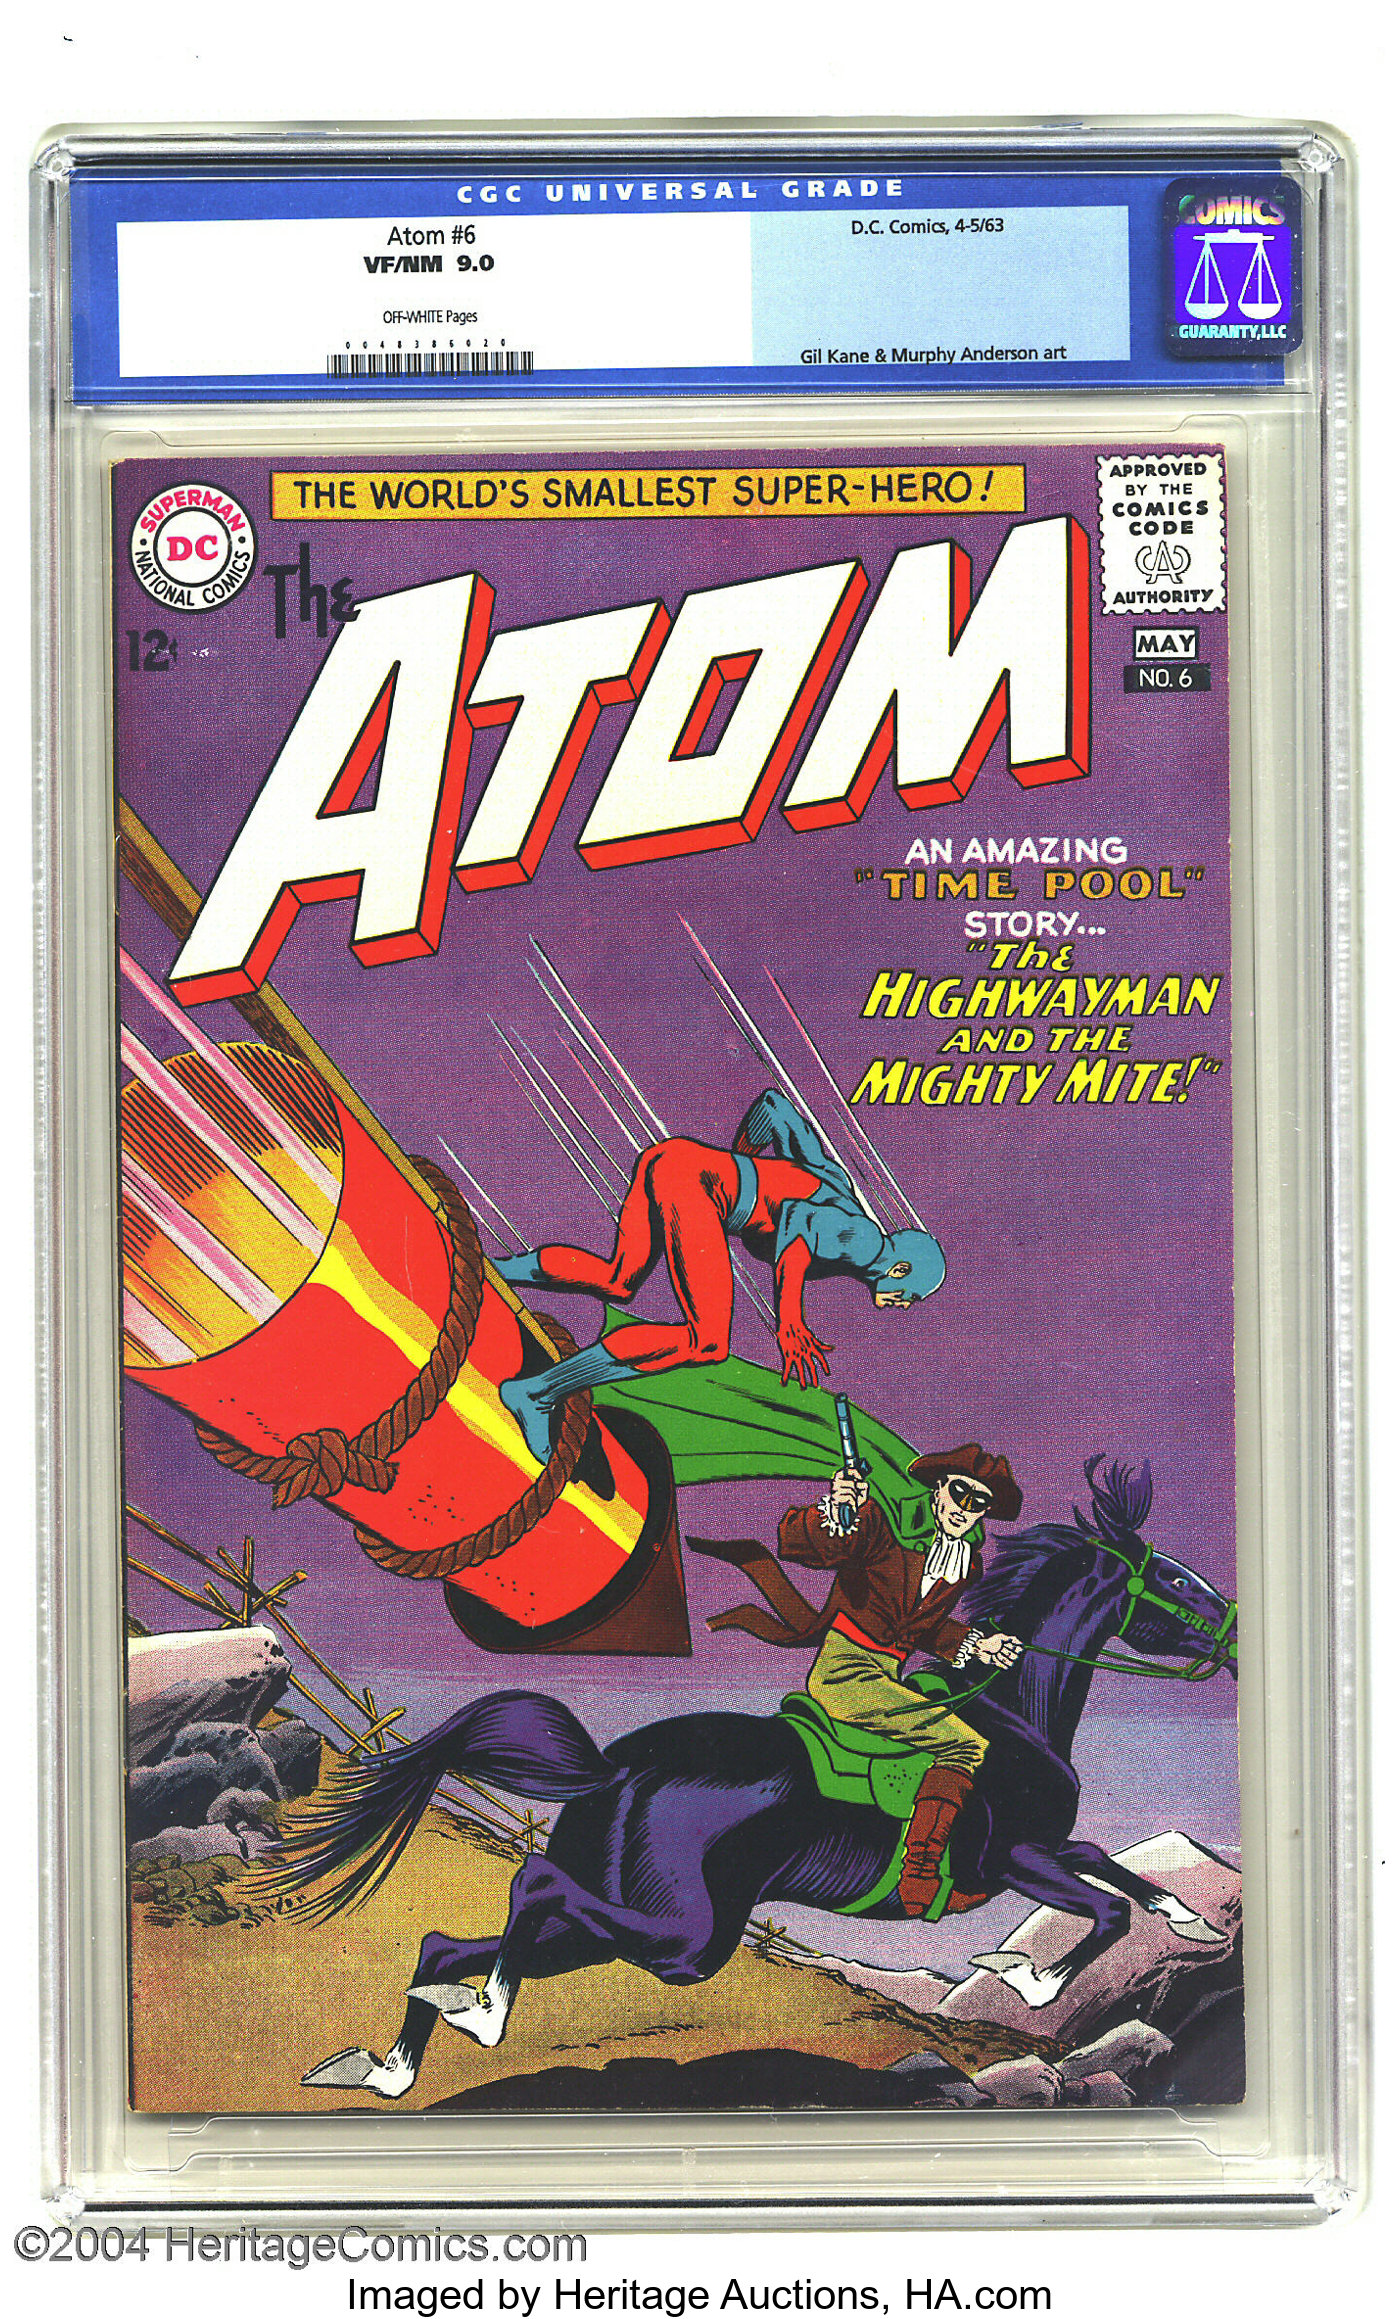 THE MIGHTY #6 OF 12 VF//NM DC COMICS